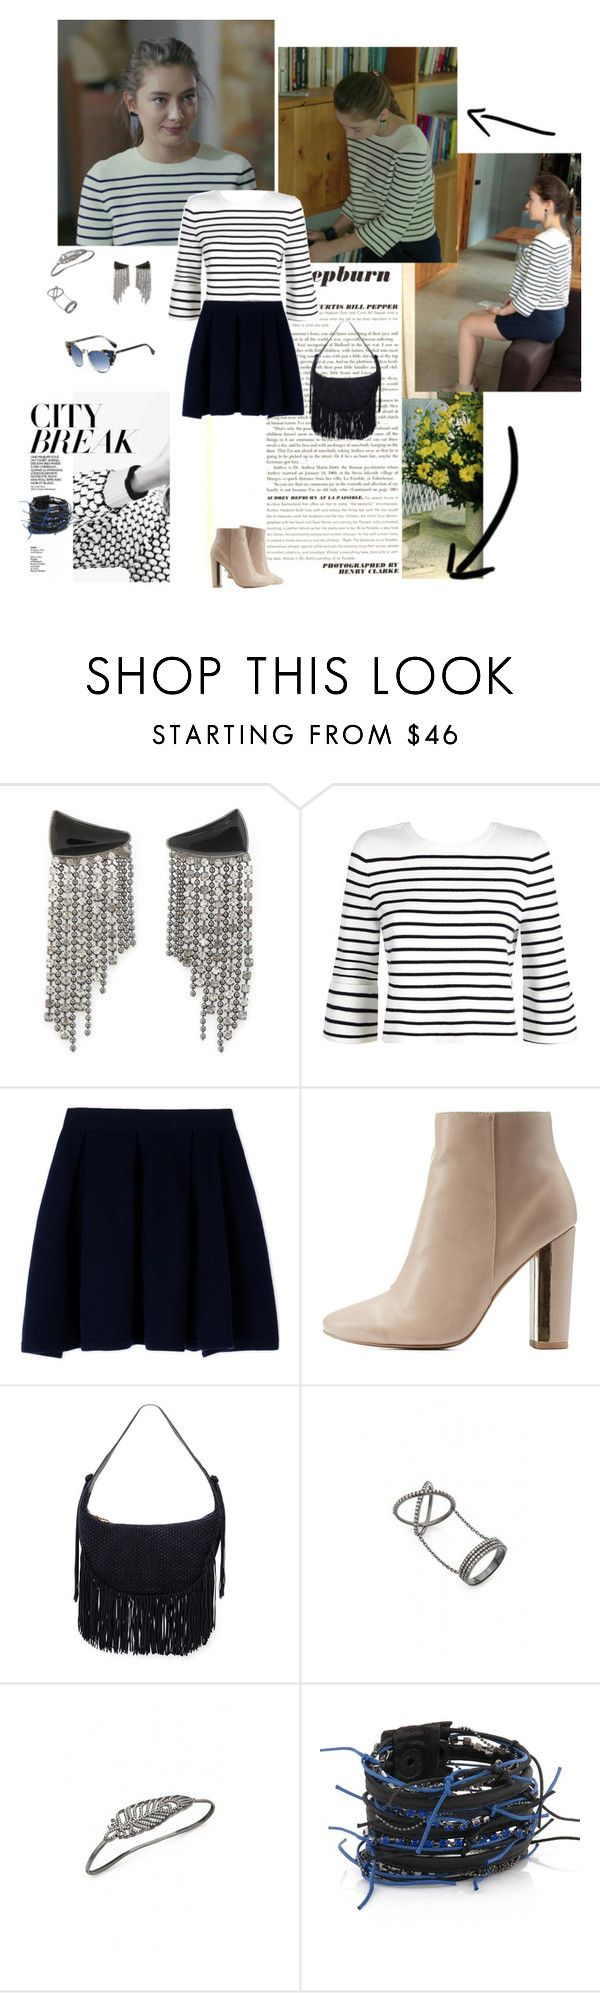 """Kara Sevda Ep. 21 Nihan"" by chaneladdicted ❤ liked on Polyvore featuring Maje…"